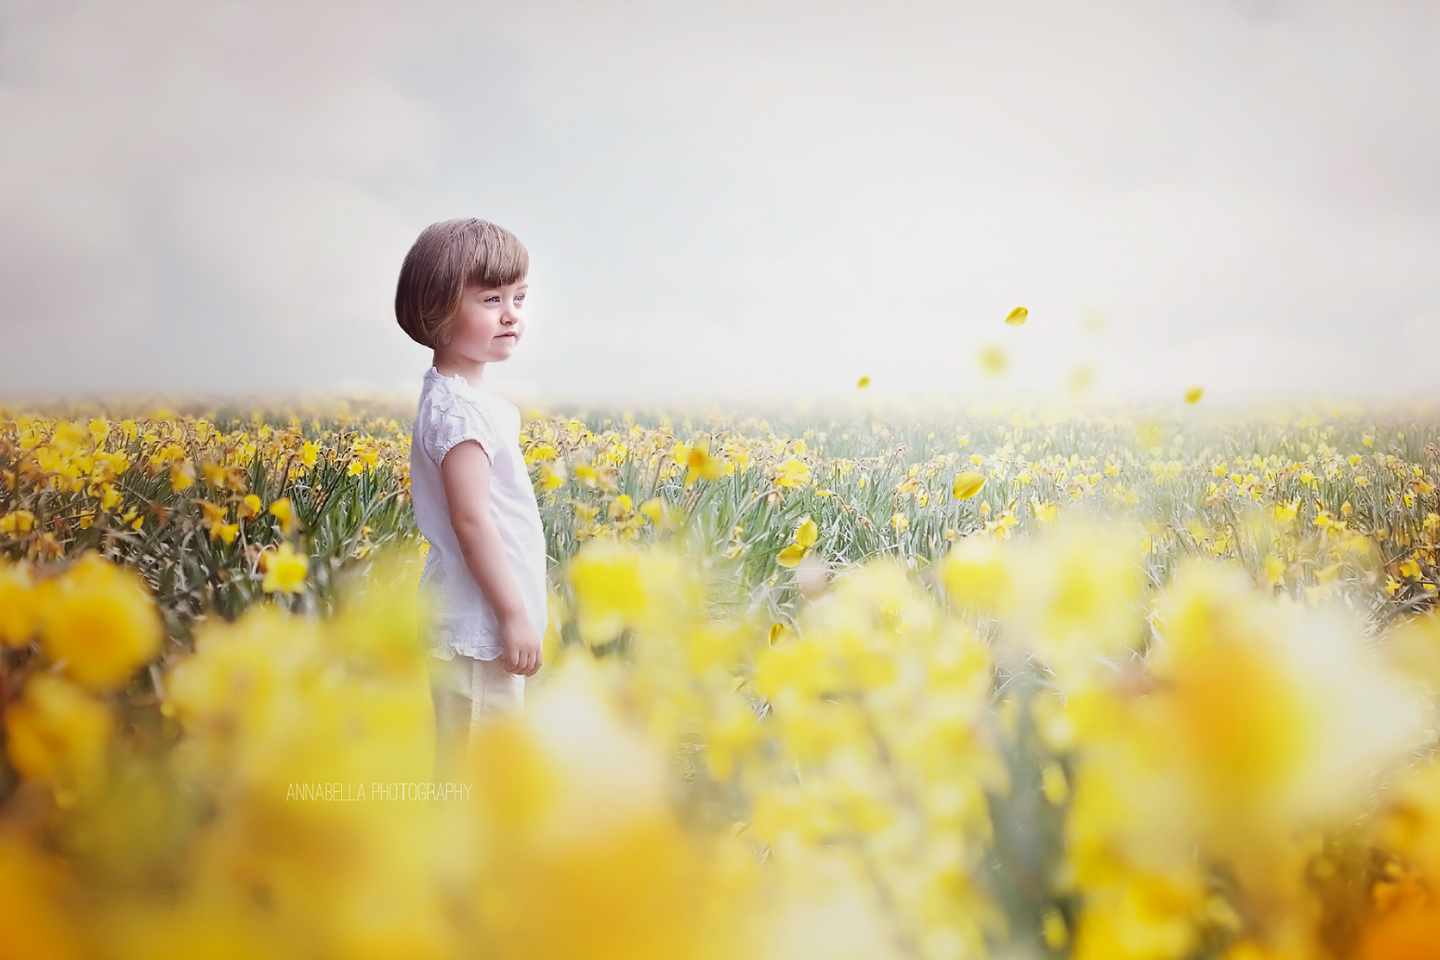 Daffodils Photo Overlays + Free Gift - Photoshop Overlays, Digital Backgrounds and Lightroom Presets